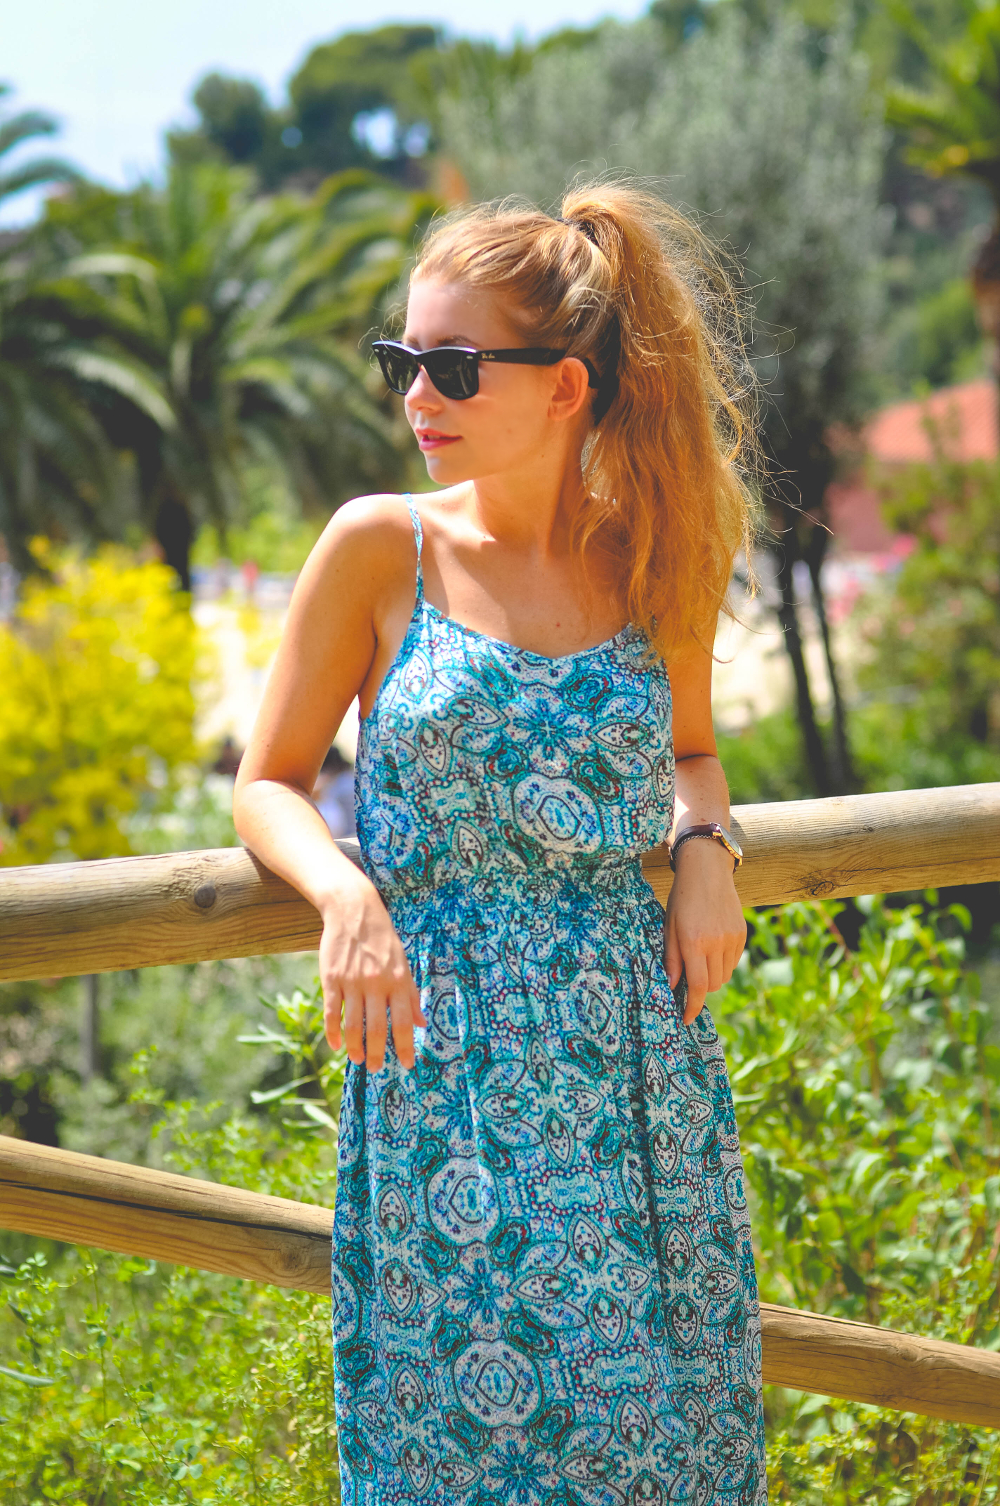 Dogs and Dresses Elien Migalski Barcelona Holiday Look Maxi Dress-46